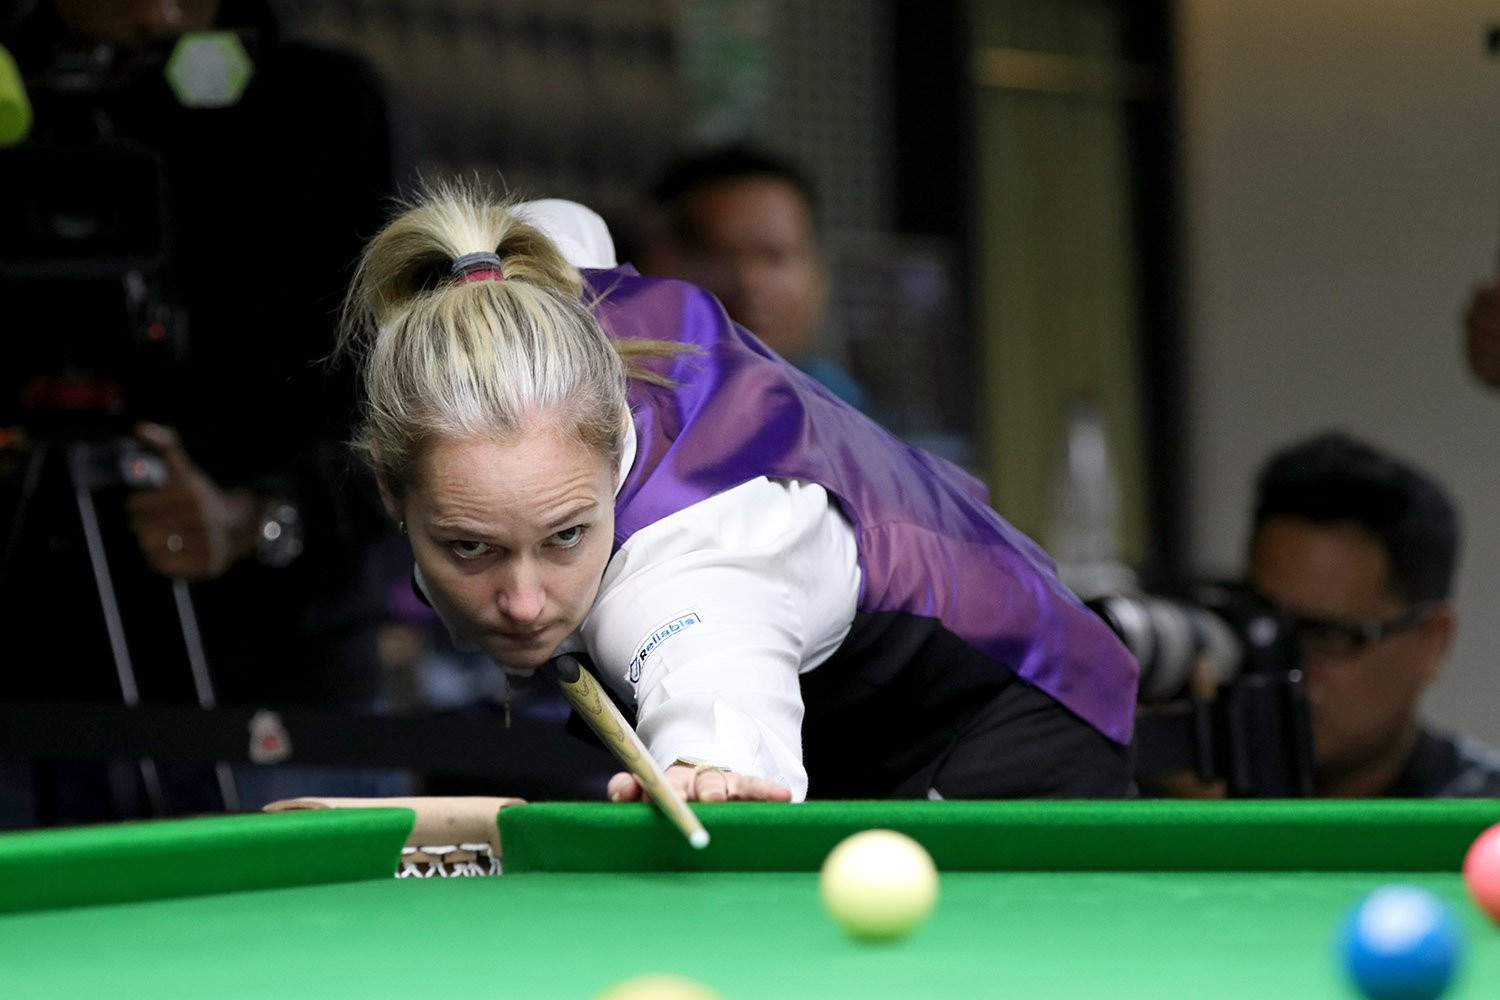 Evans wins record 12th World Women's Snooker Championship after seeing off challenge of Wongharuthai